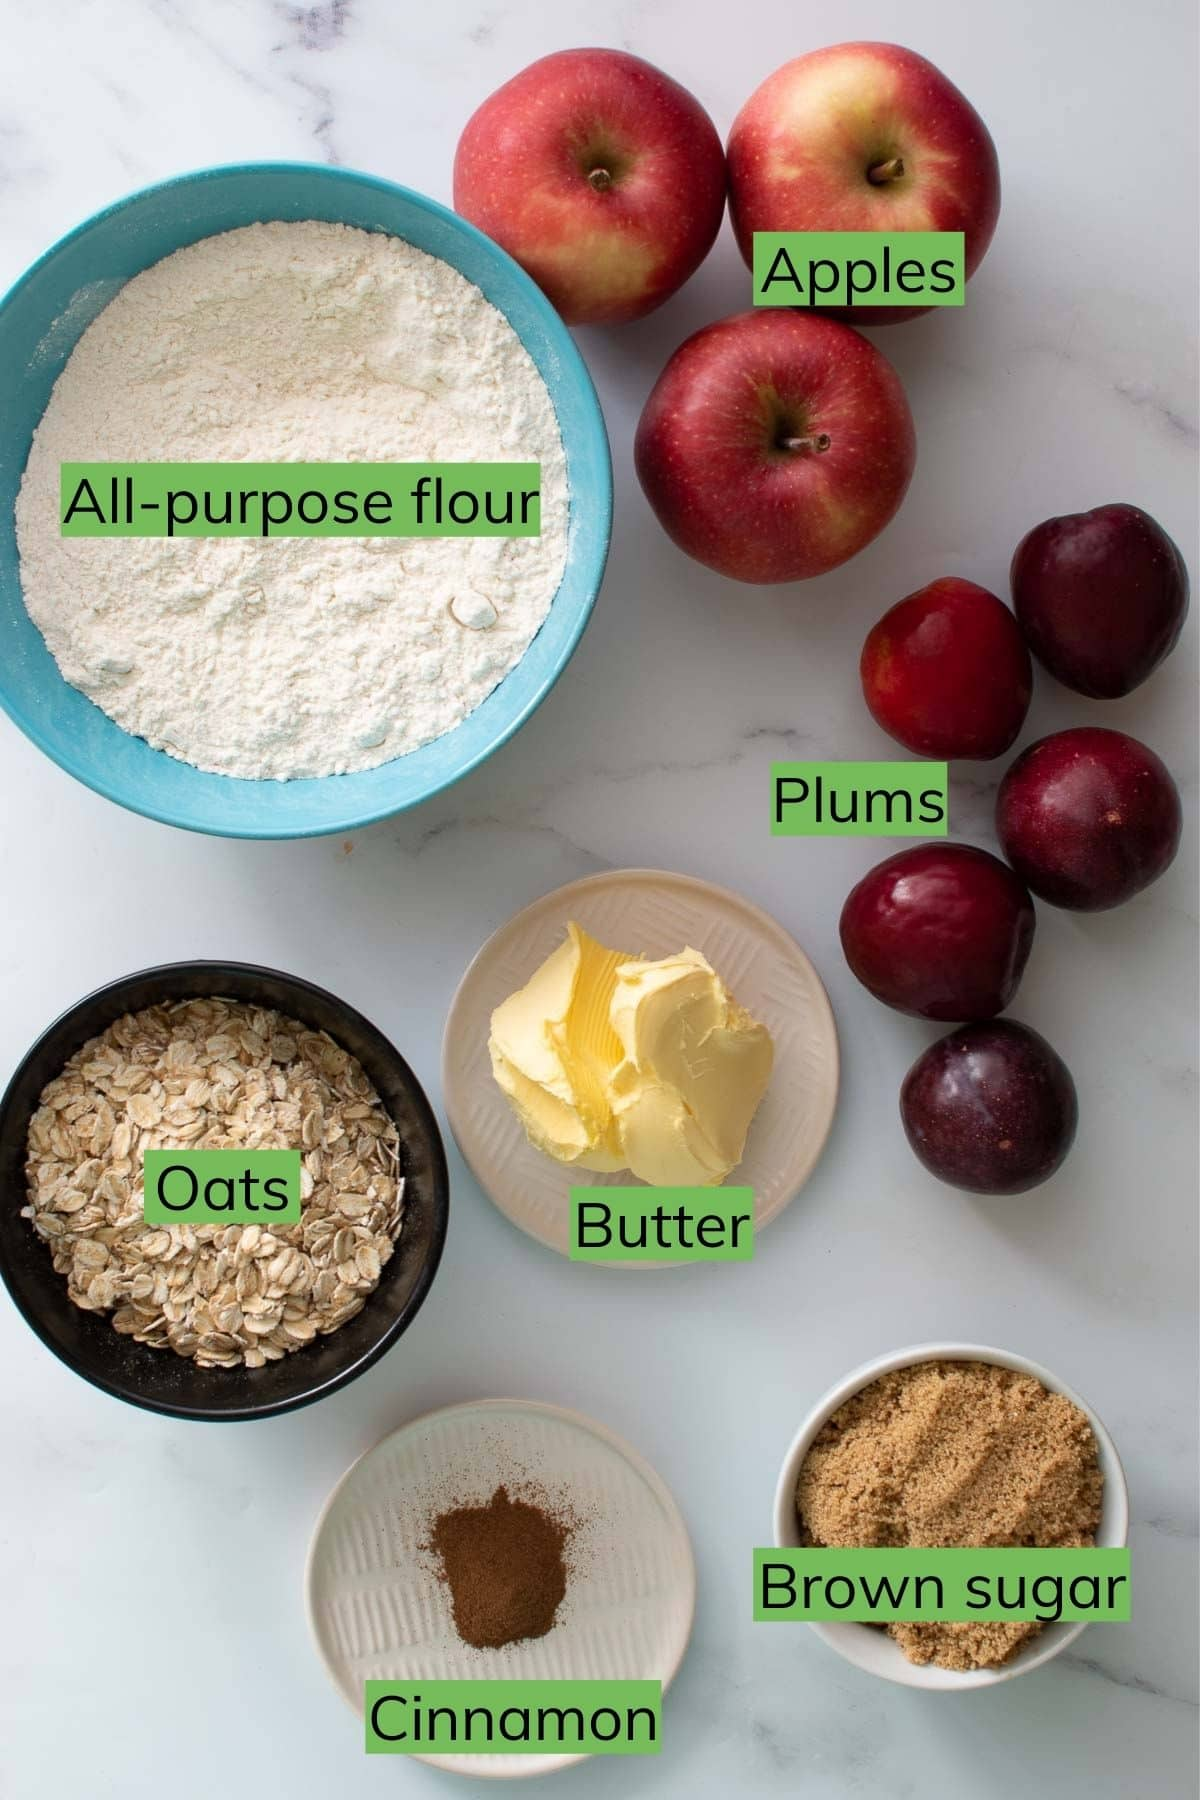 The ingredients needed to make apple plum crumble.